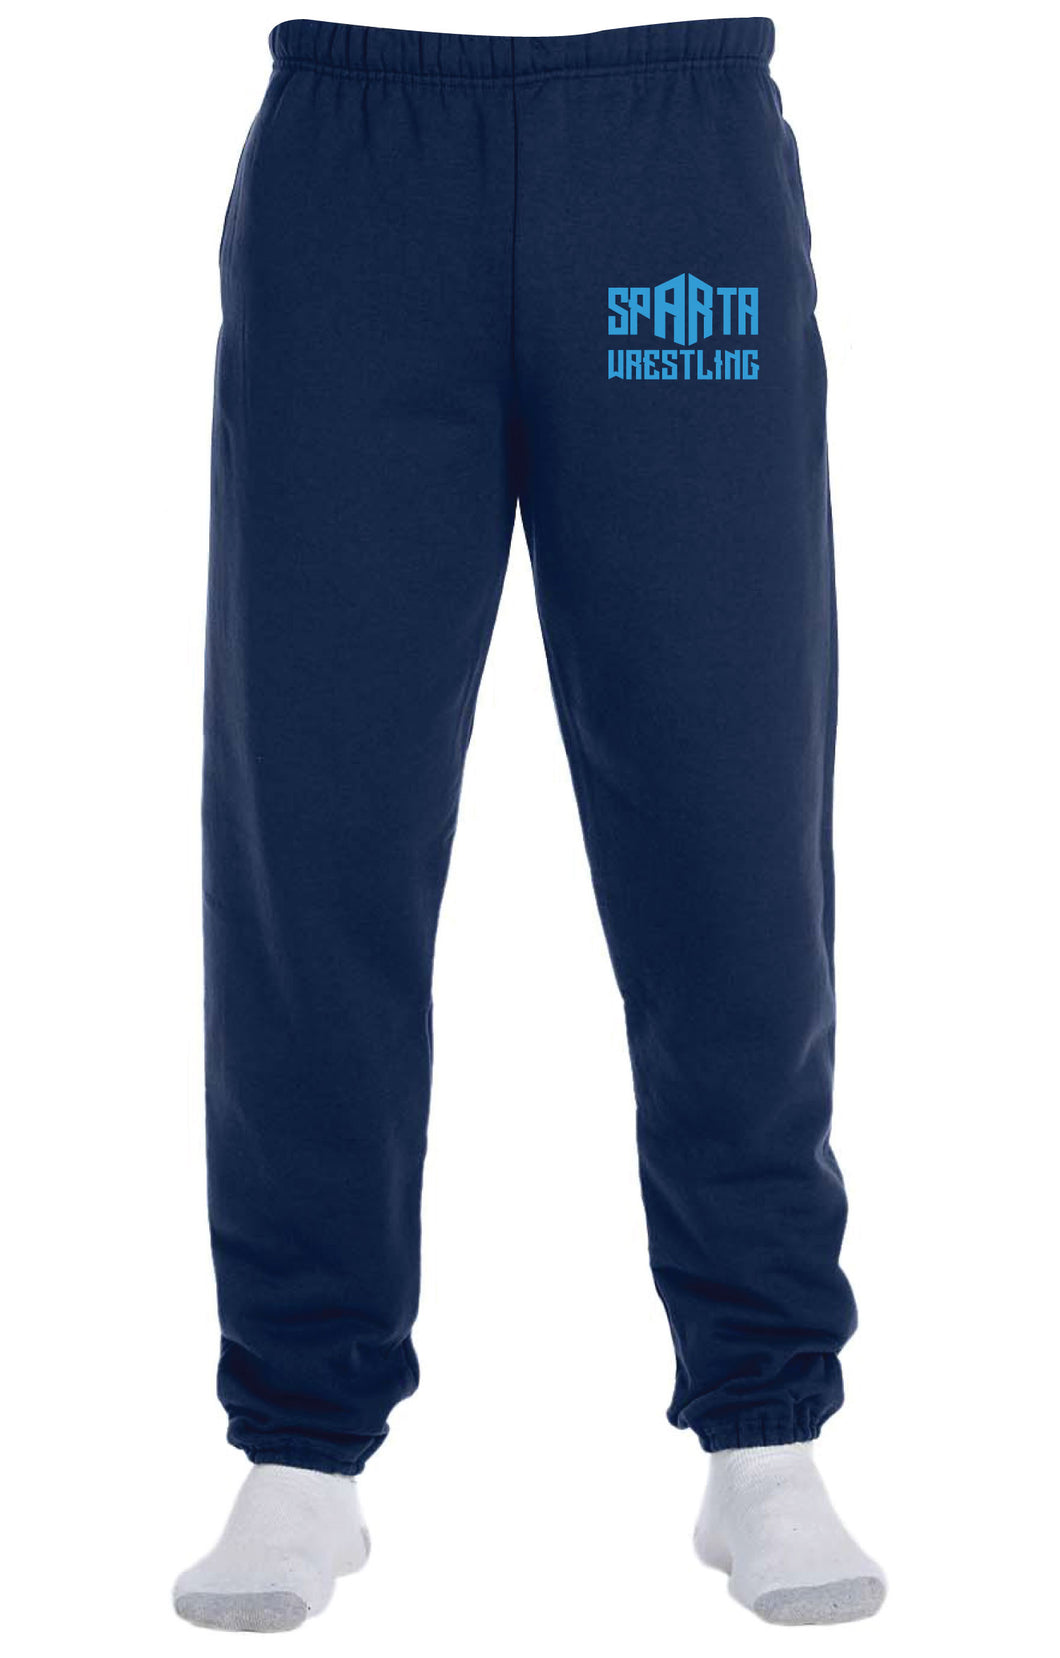 Sparta Youth Wrestling Cotton Sweatpants